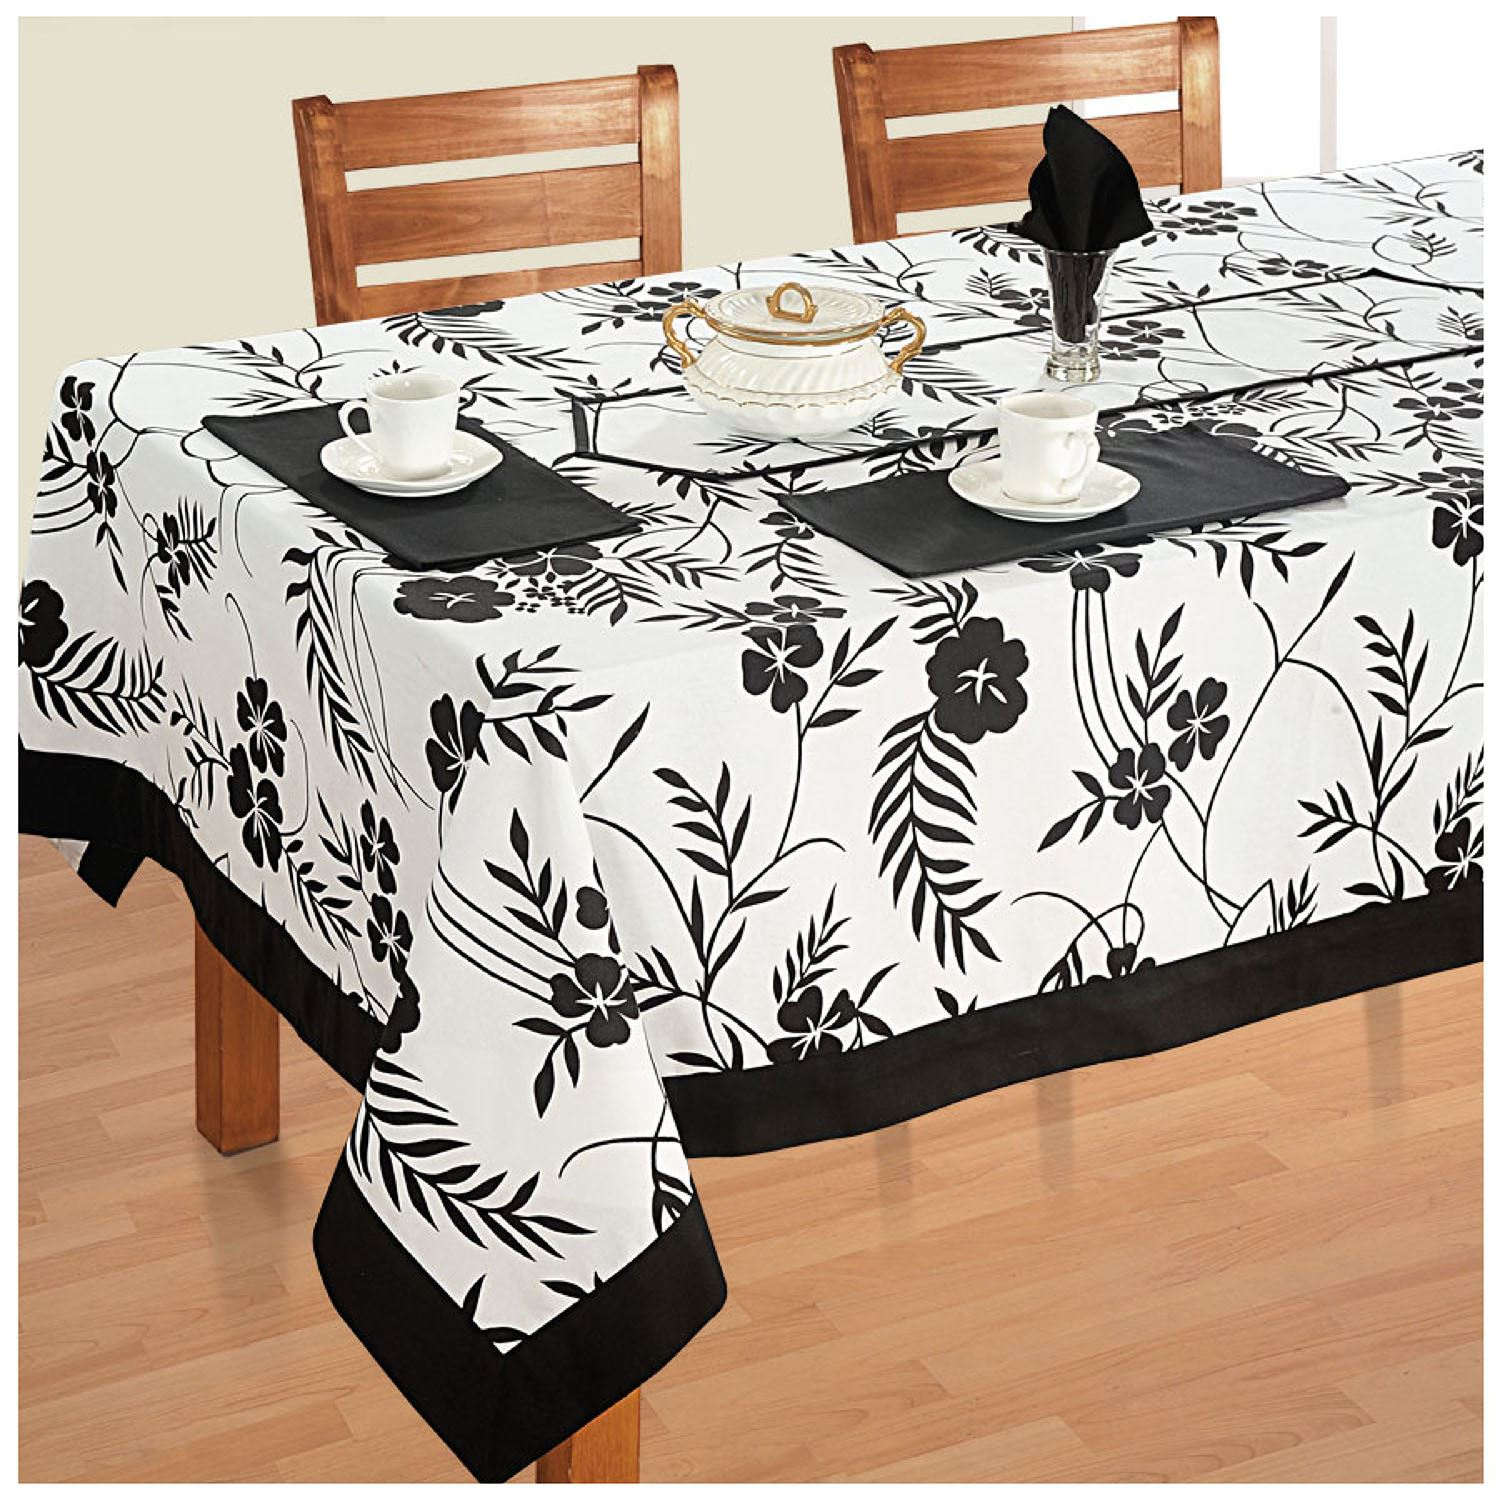 Dining Room Table Linens: Dinner Party Table Linen Set 6 Seater Kitchen Dining